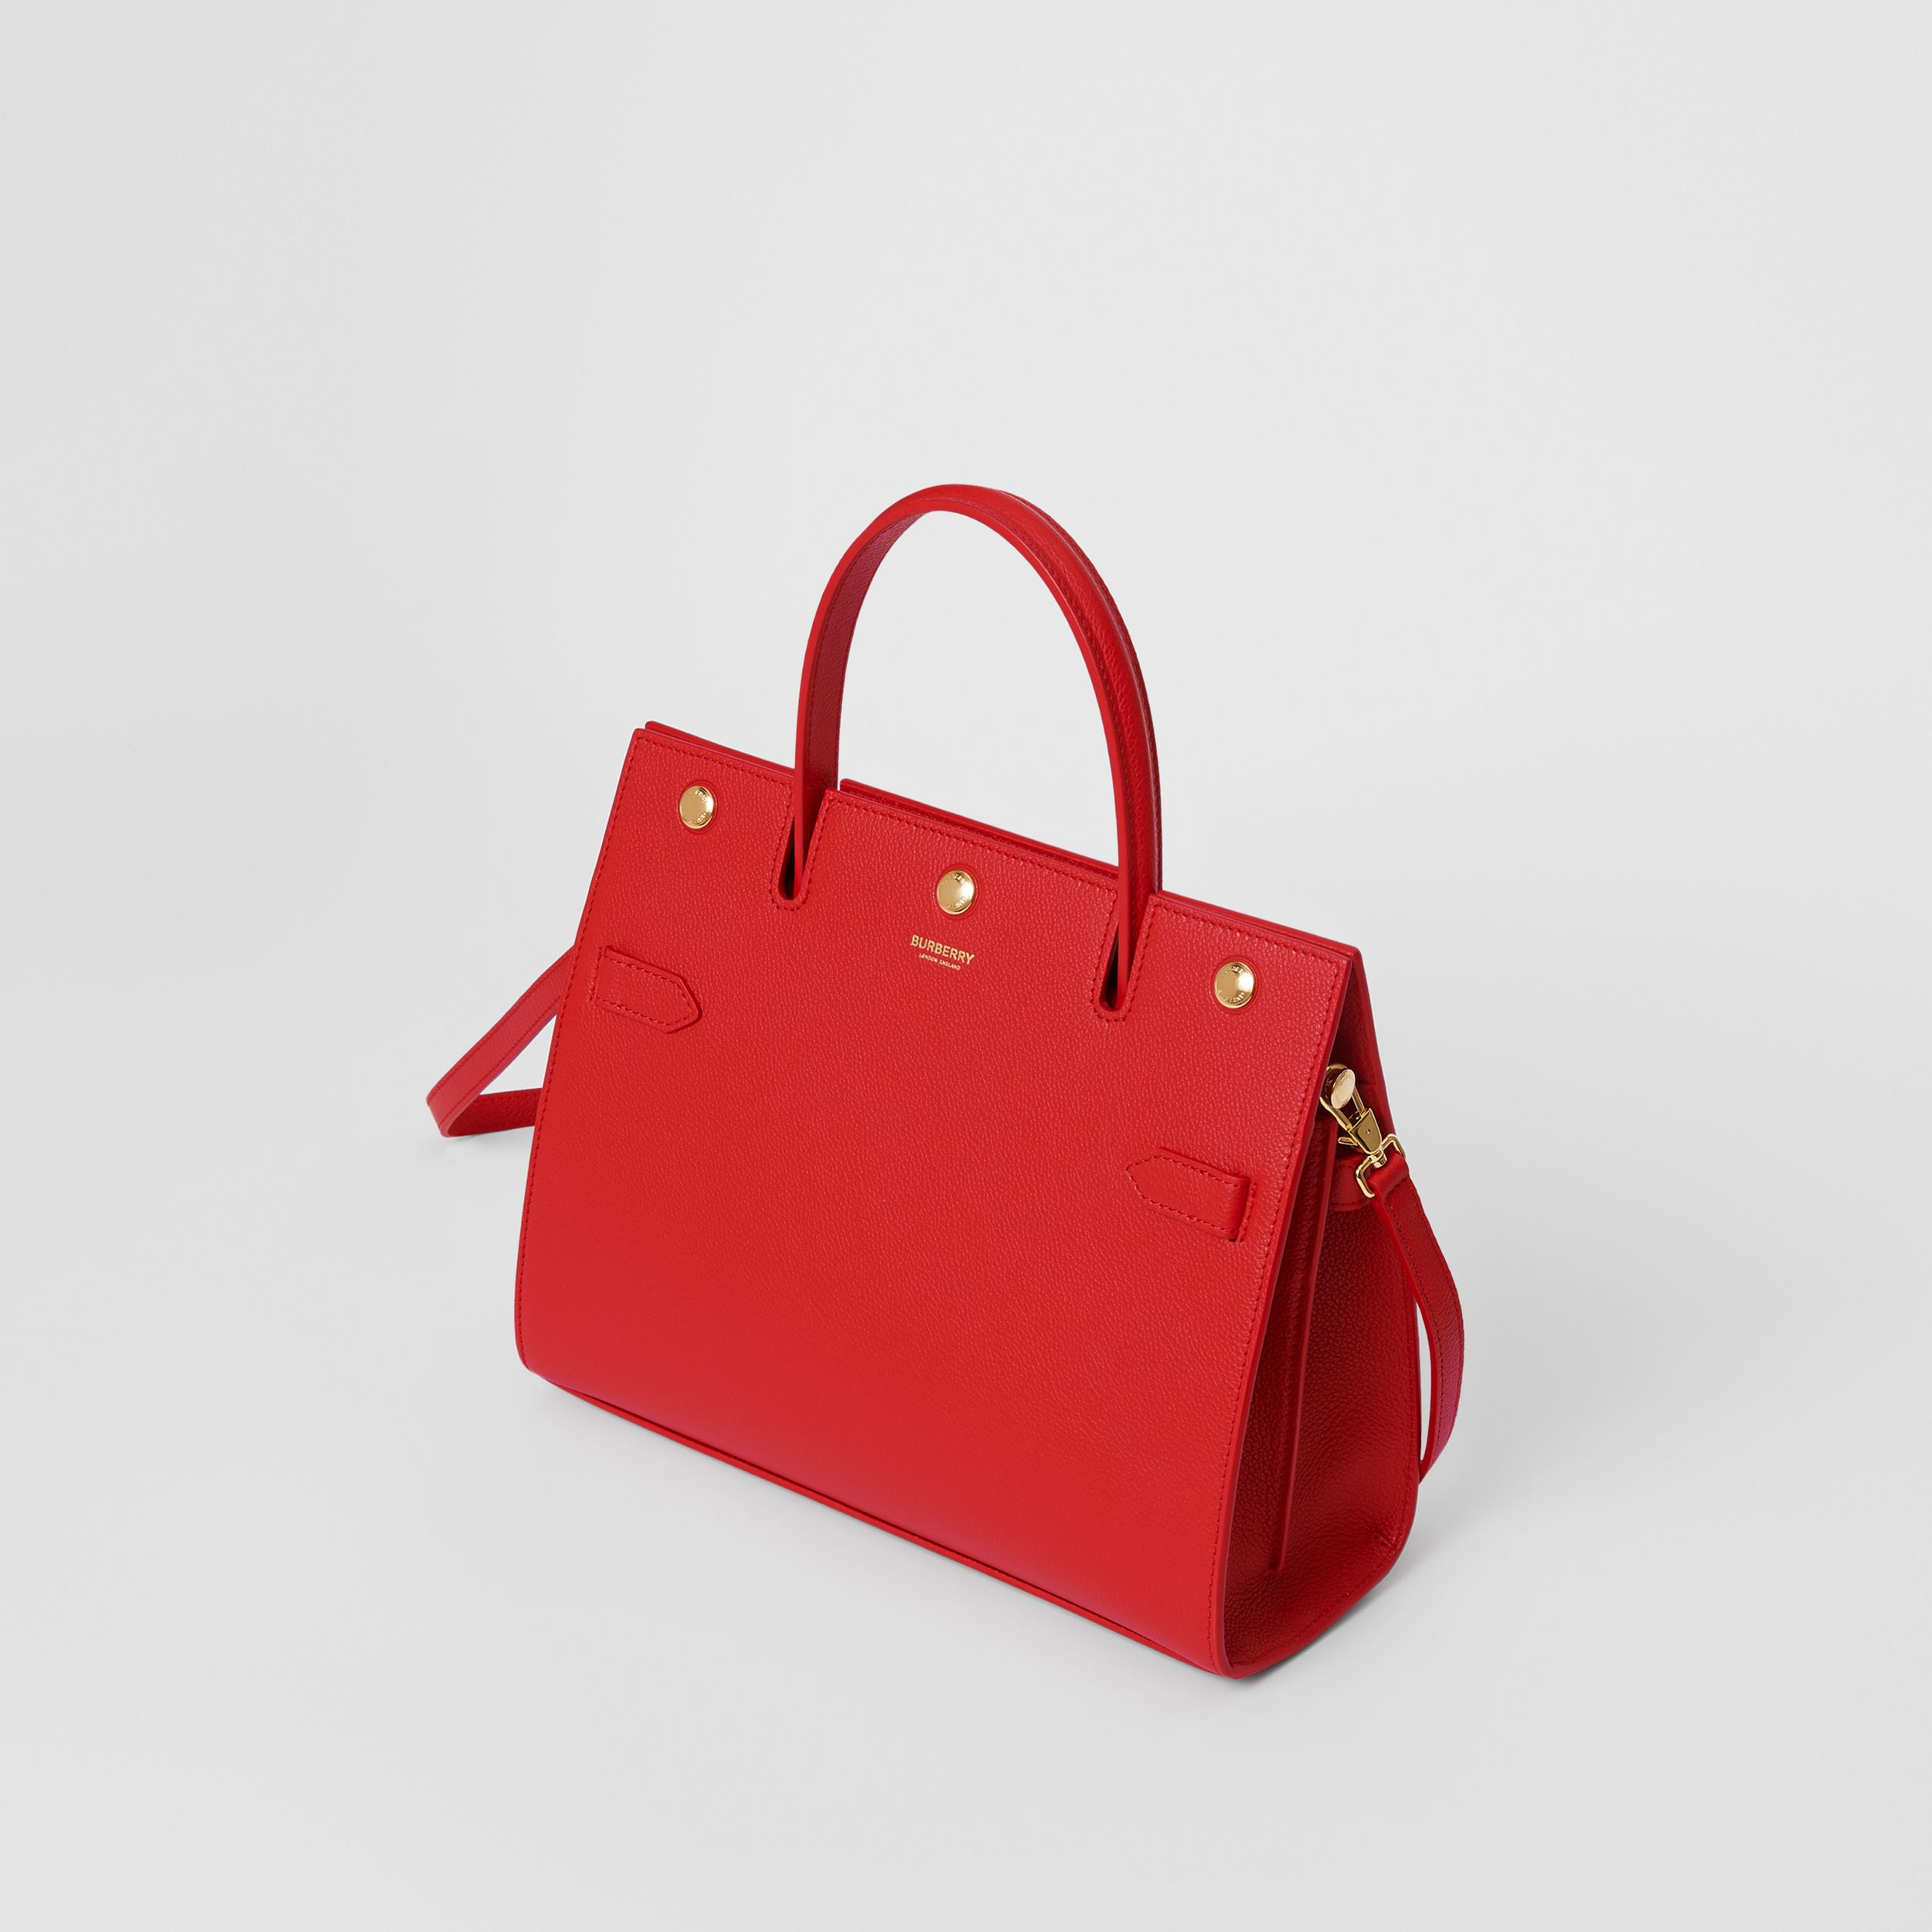 Small Leather Title Bag in Bright Red - Women | Burberry United Kingdom - 4